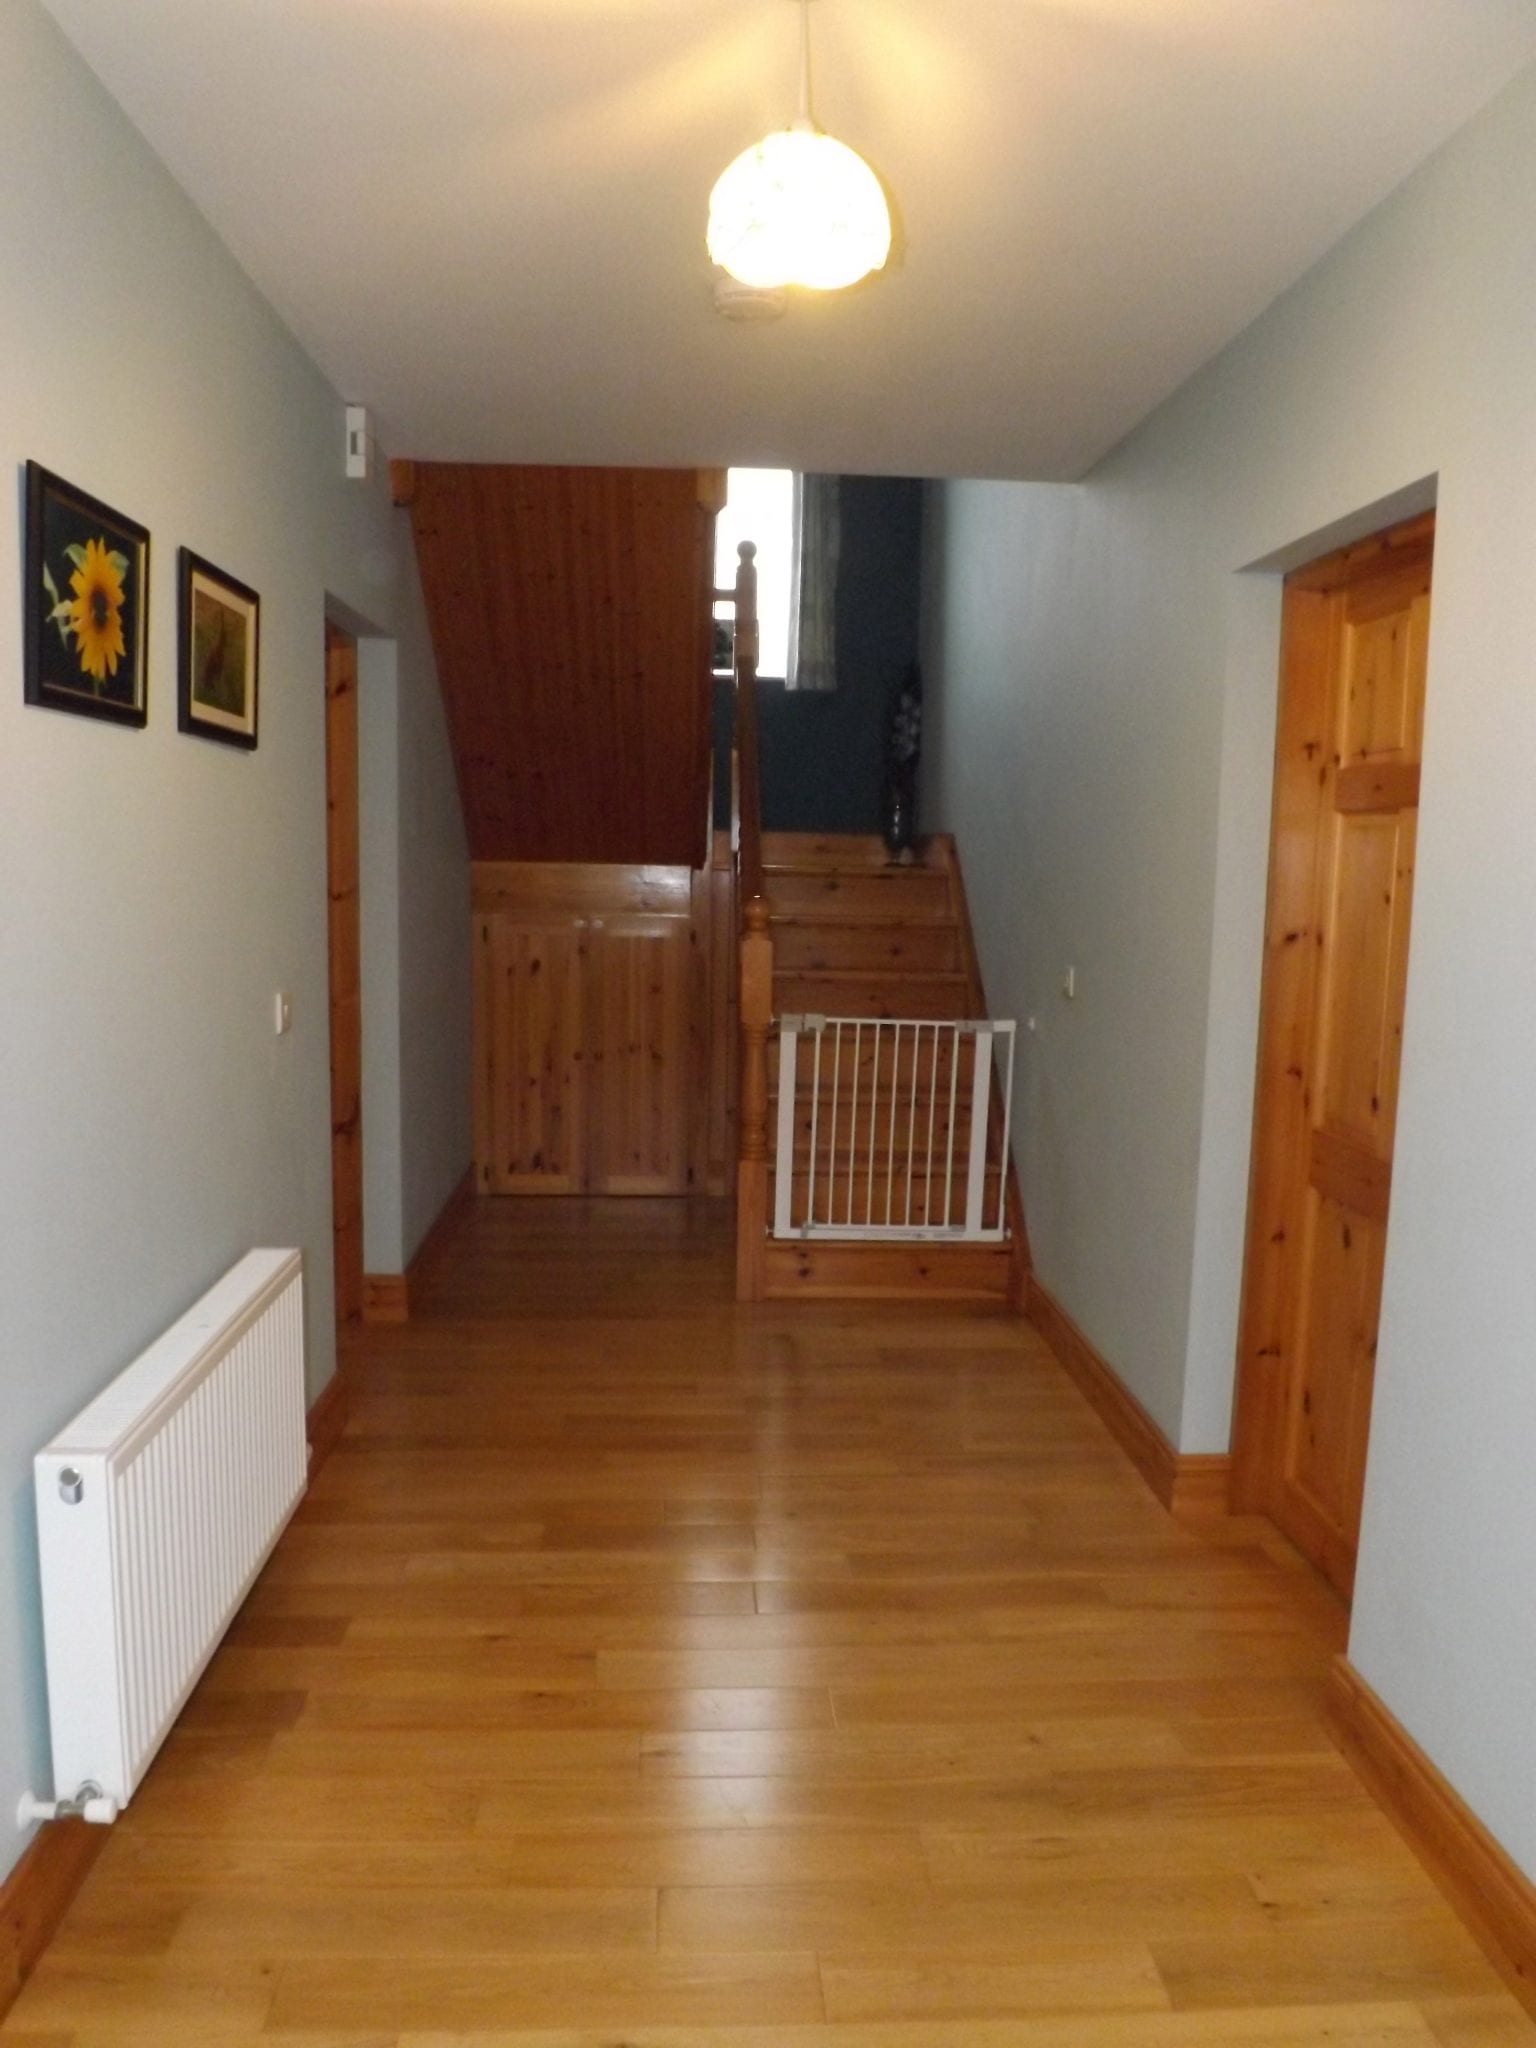 7. stairs hall